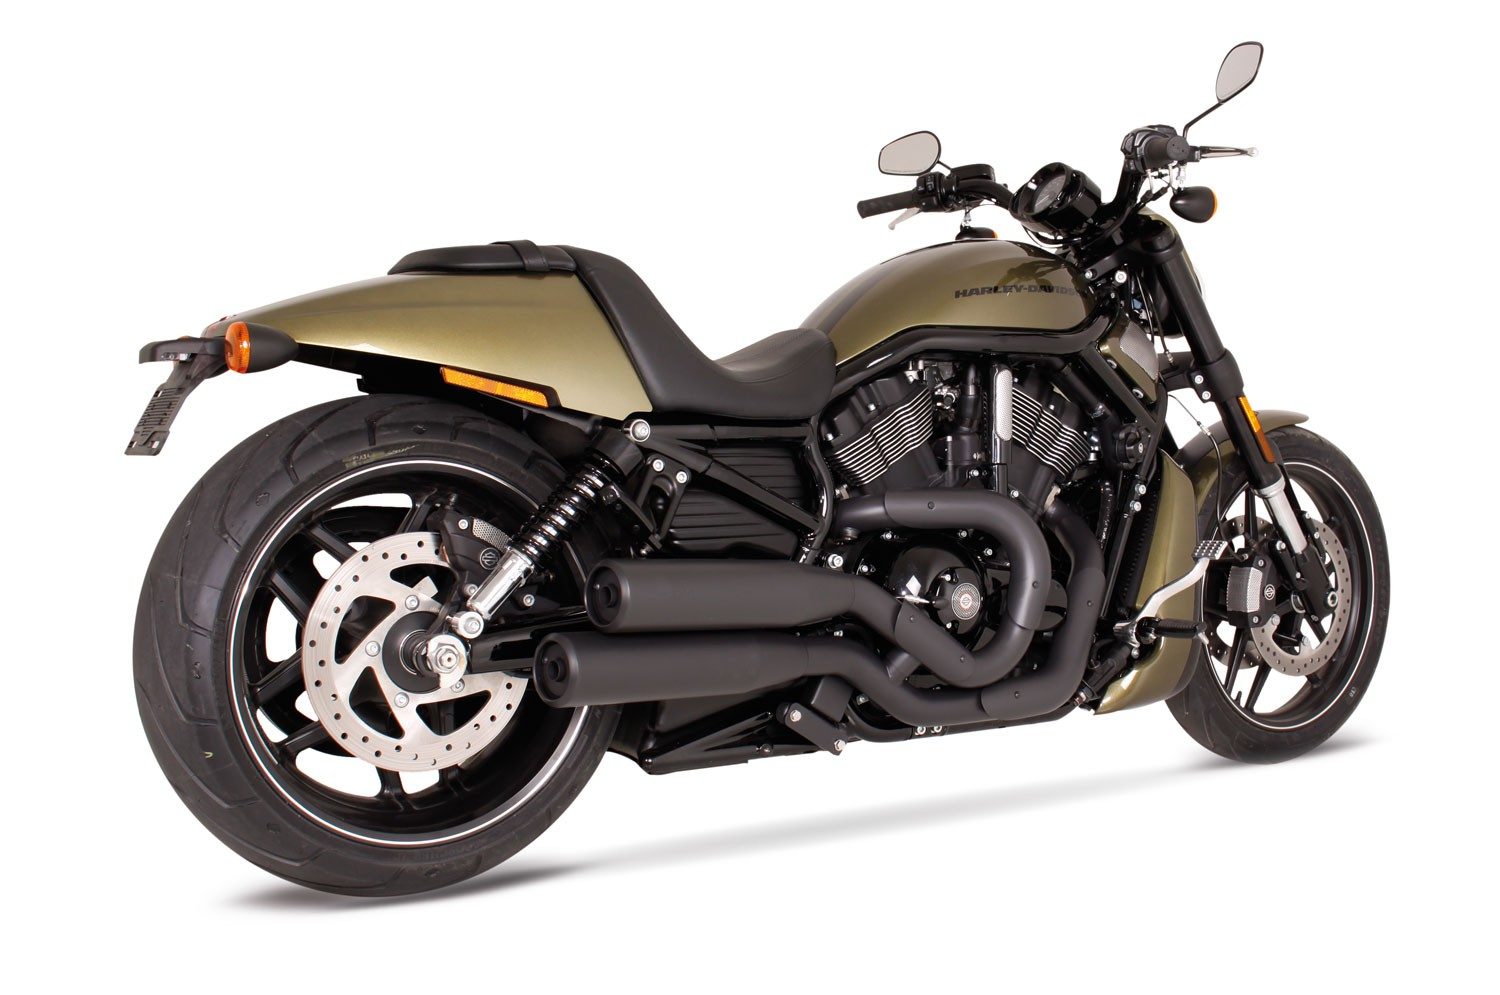 remus news bike info 42 15 harley davidson night rod special mod 2016. Black Bedroom Furniture Sets. Home Design Ideas